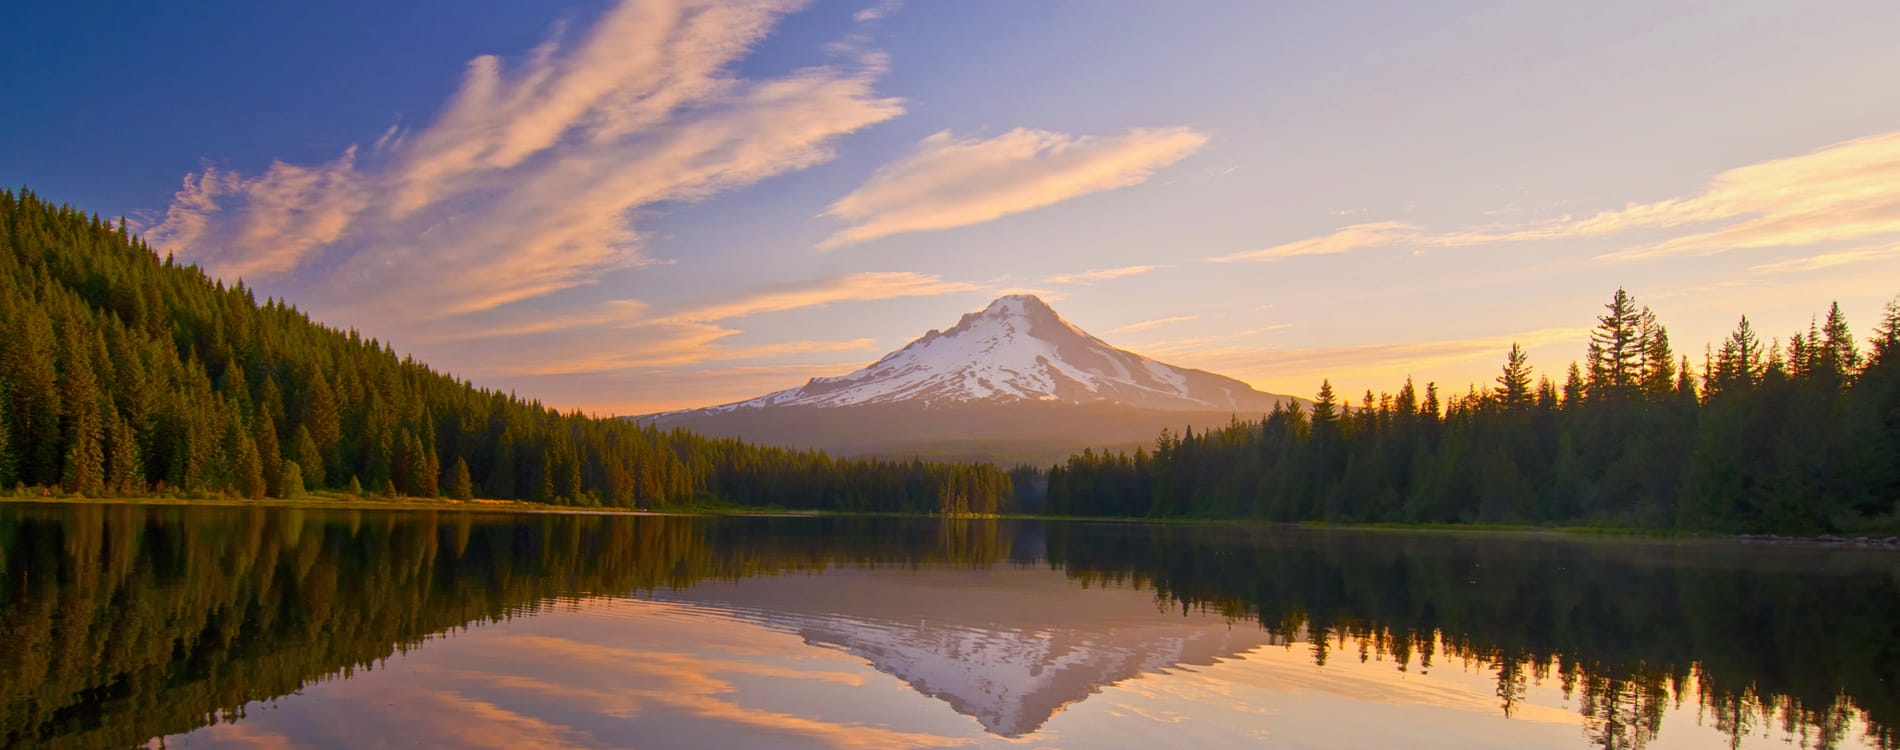 Mount hood oregon cabin rentals getaways all cabins for Barlow cabin trillium lake